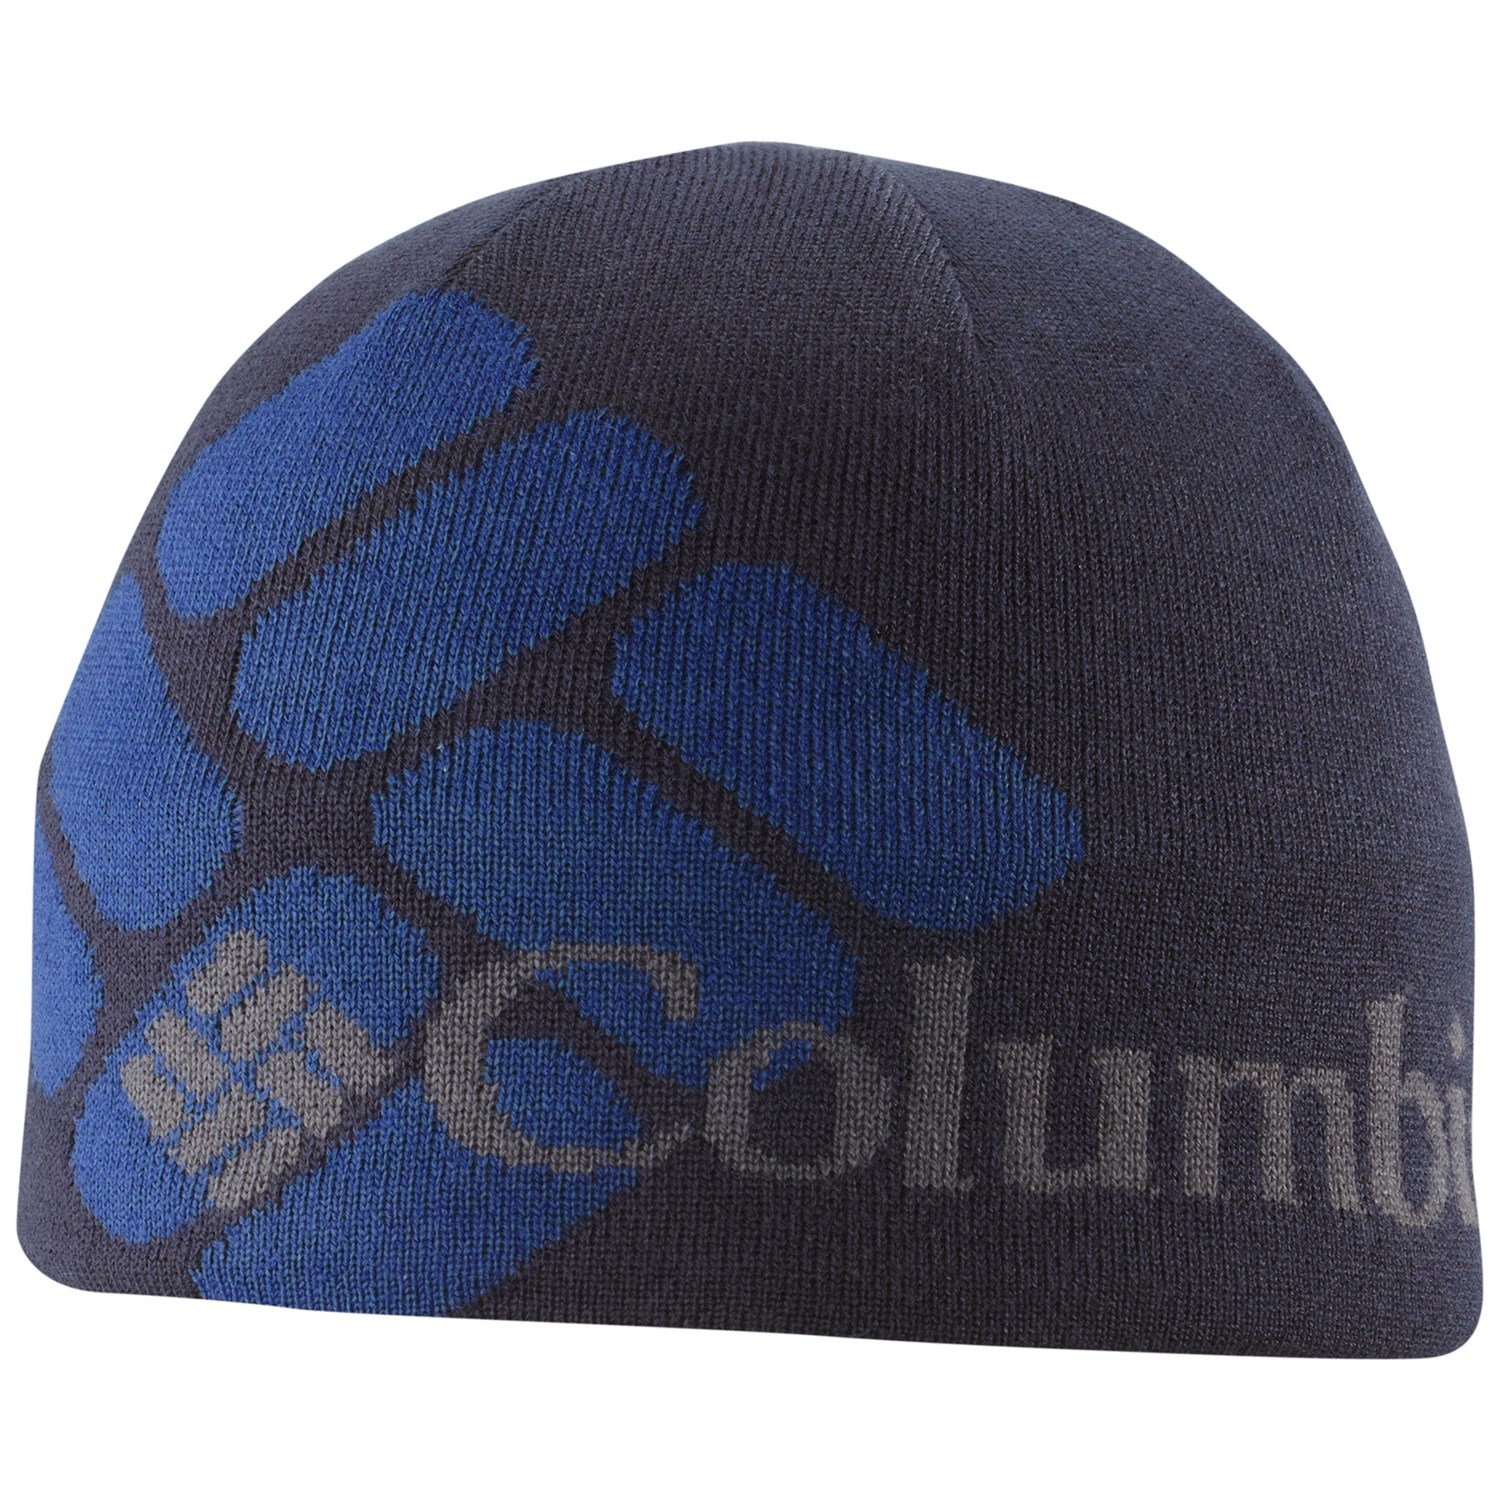 The best trading system chris beanie review